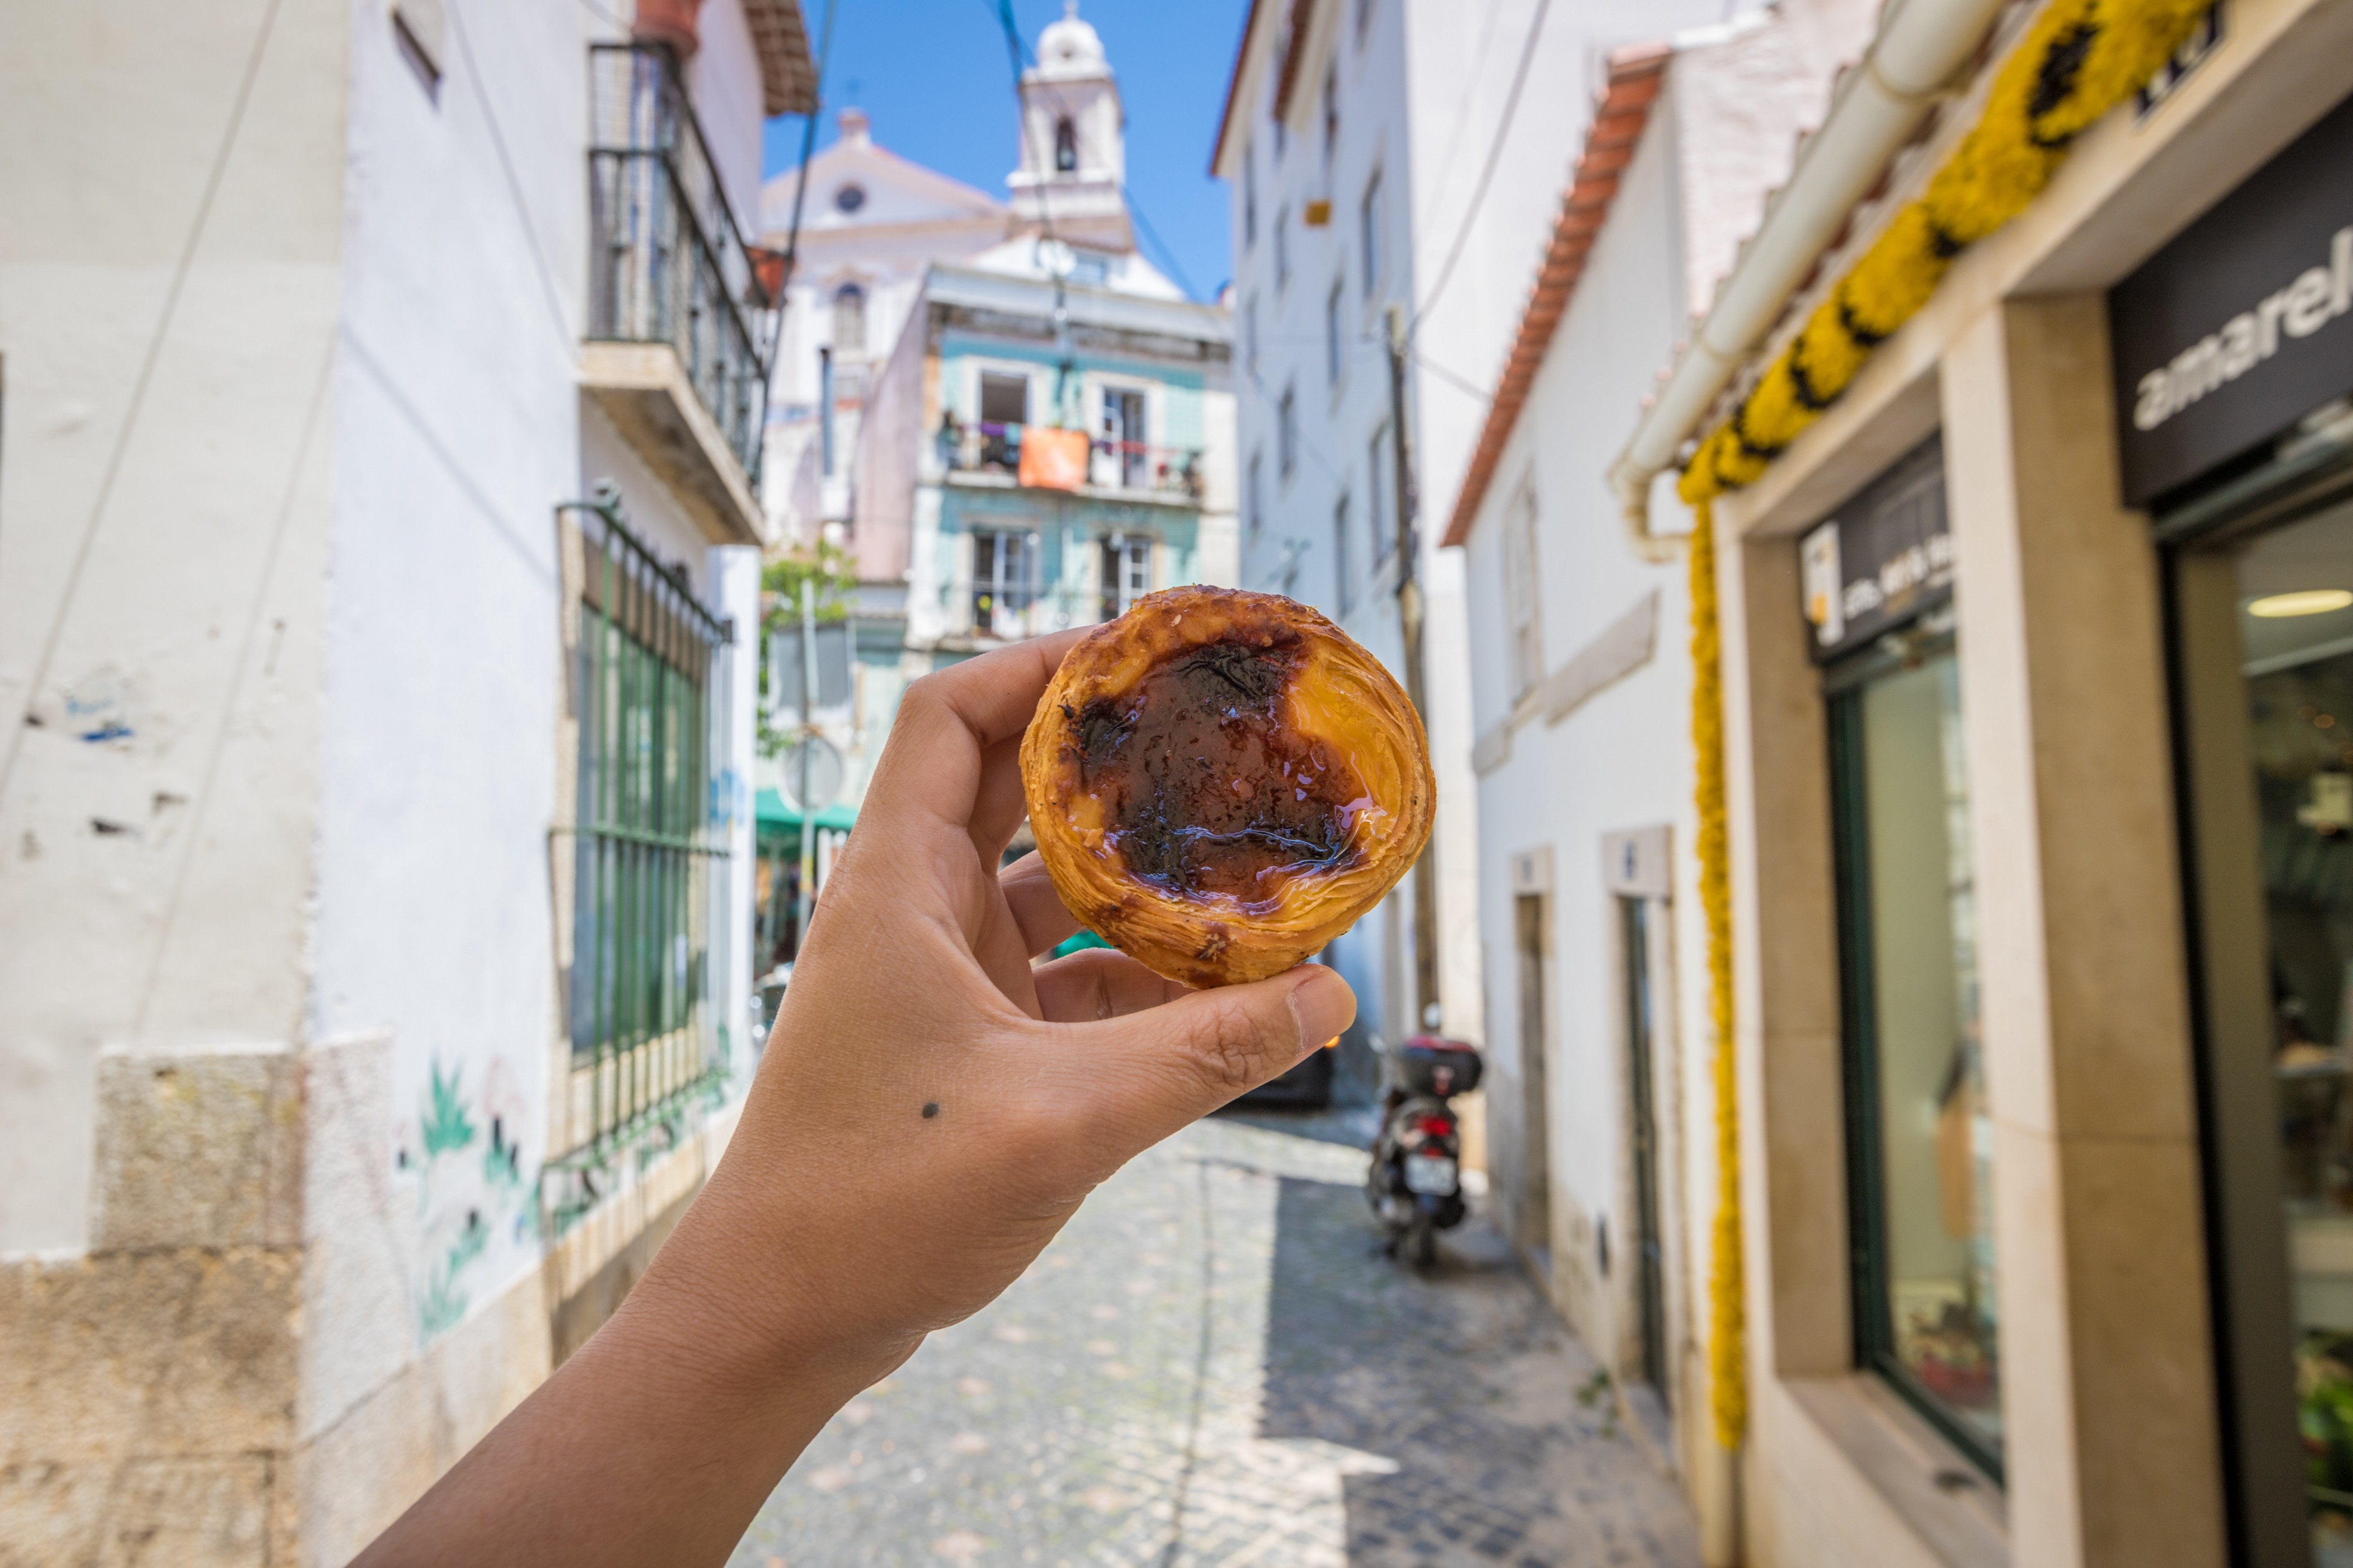 Hand holding Portuguese custard pastry in front of typical Lisbon backdrop.